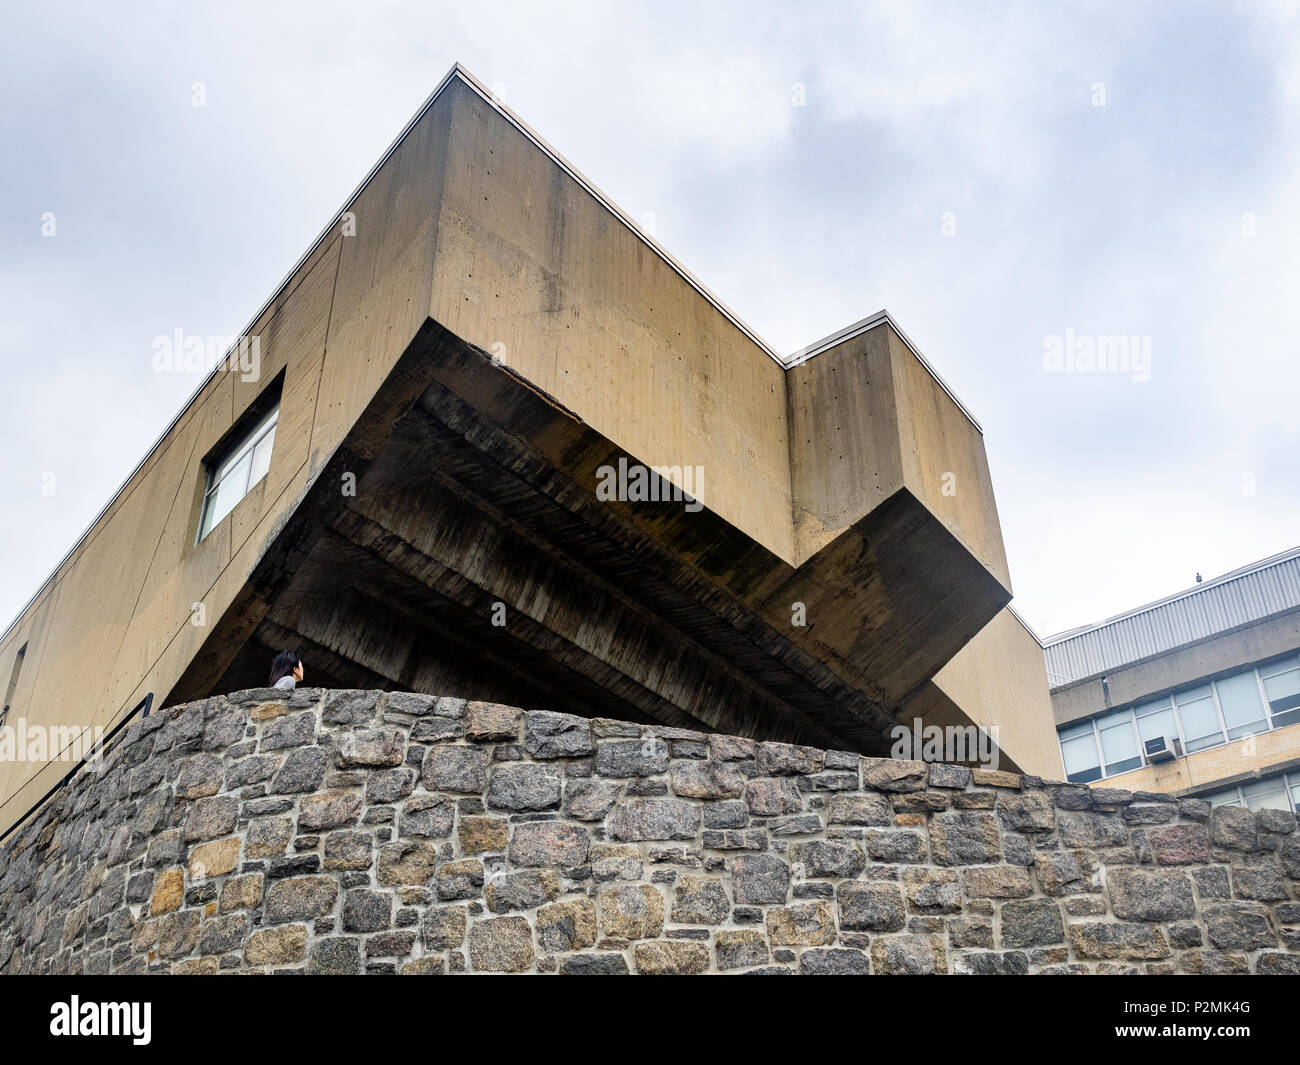 Begrisch Hall designed by Marcel Breuer, Bronx Community Campus, Bronx, New York. - Stock Image